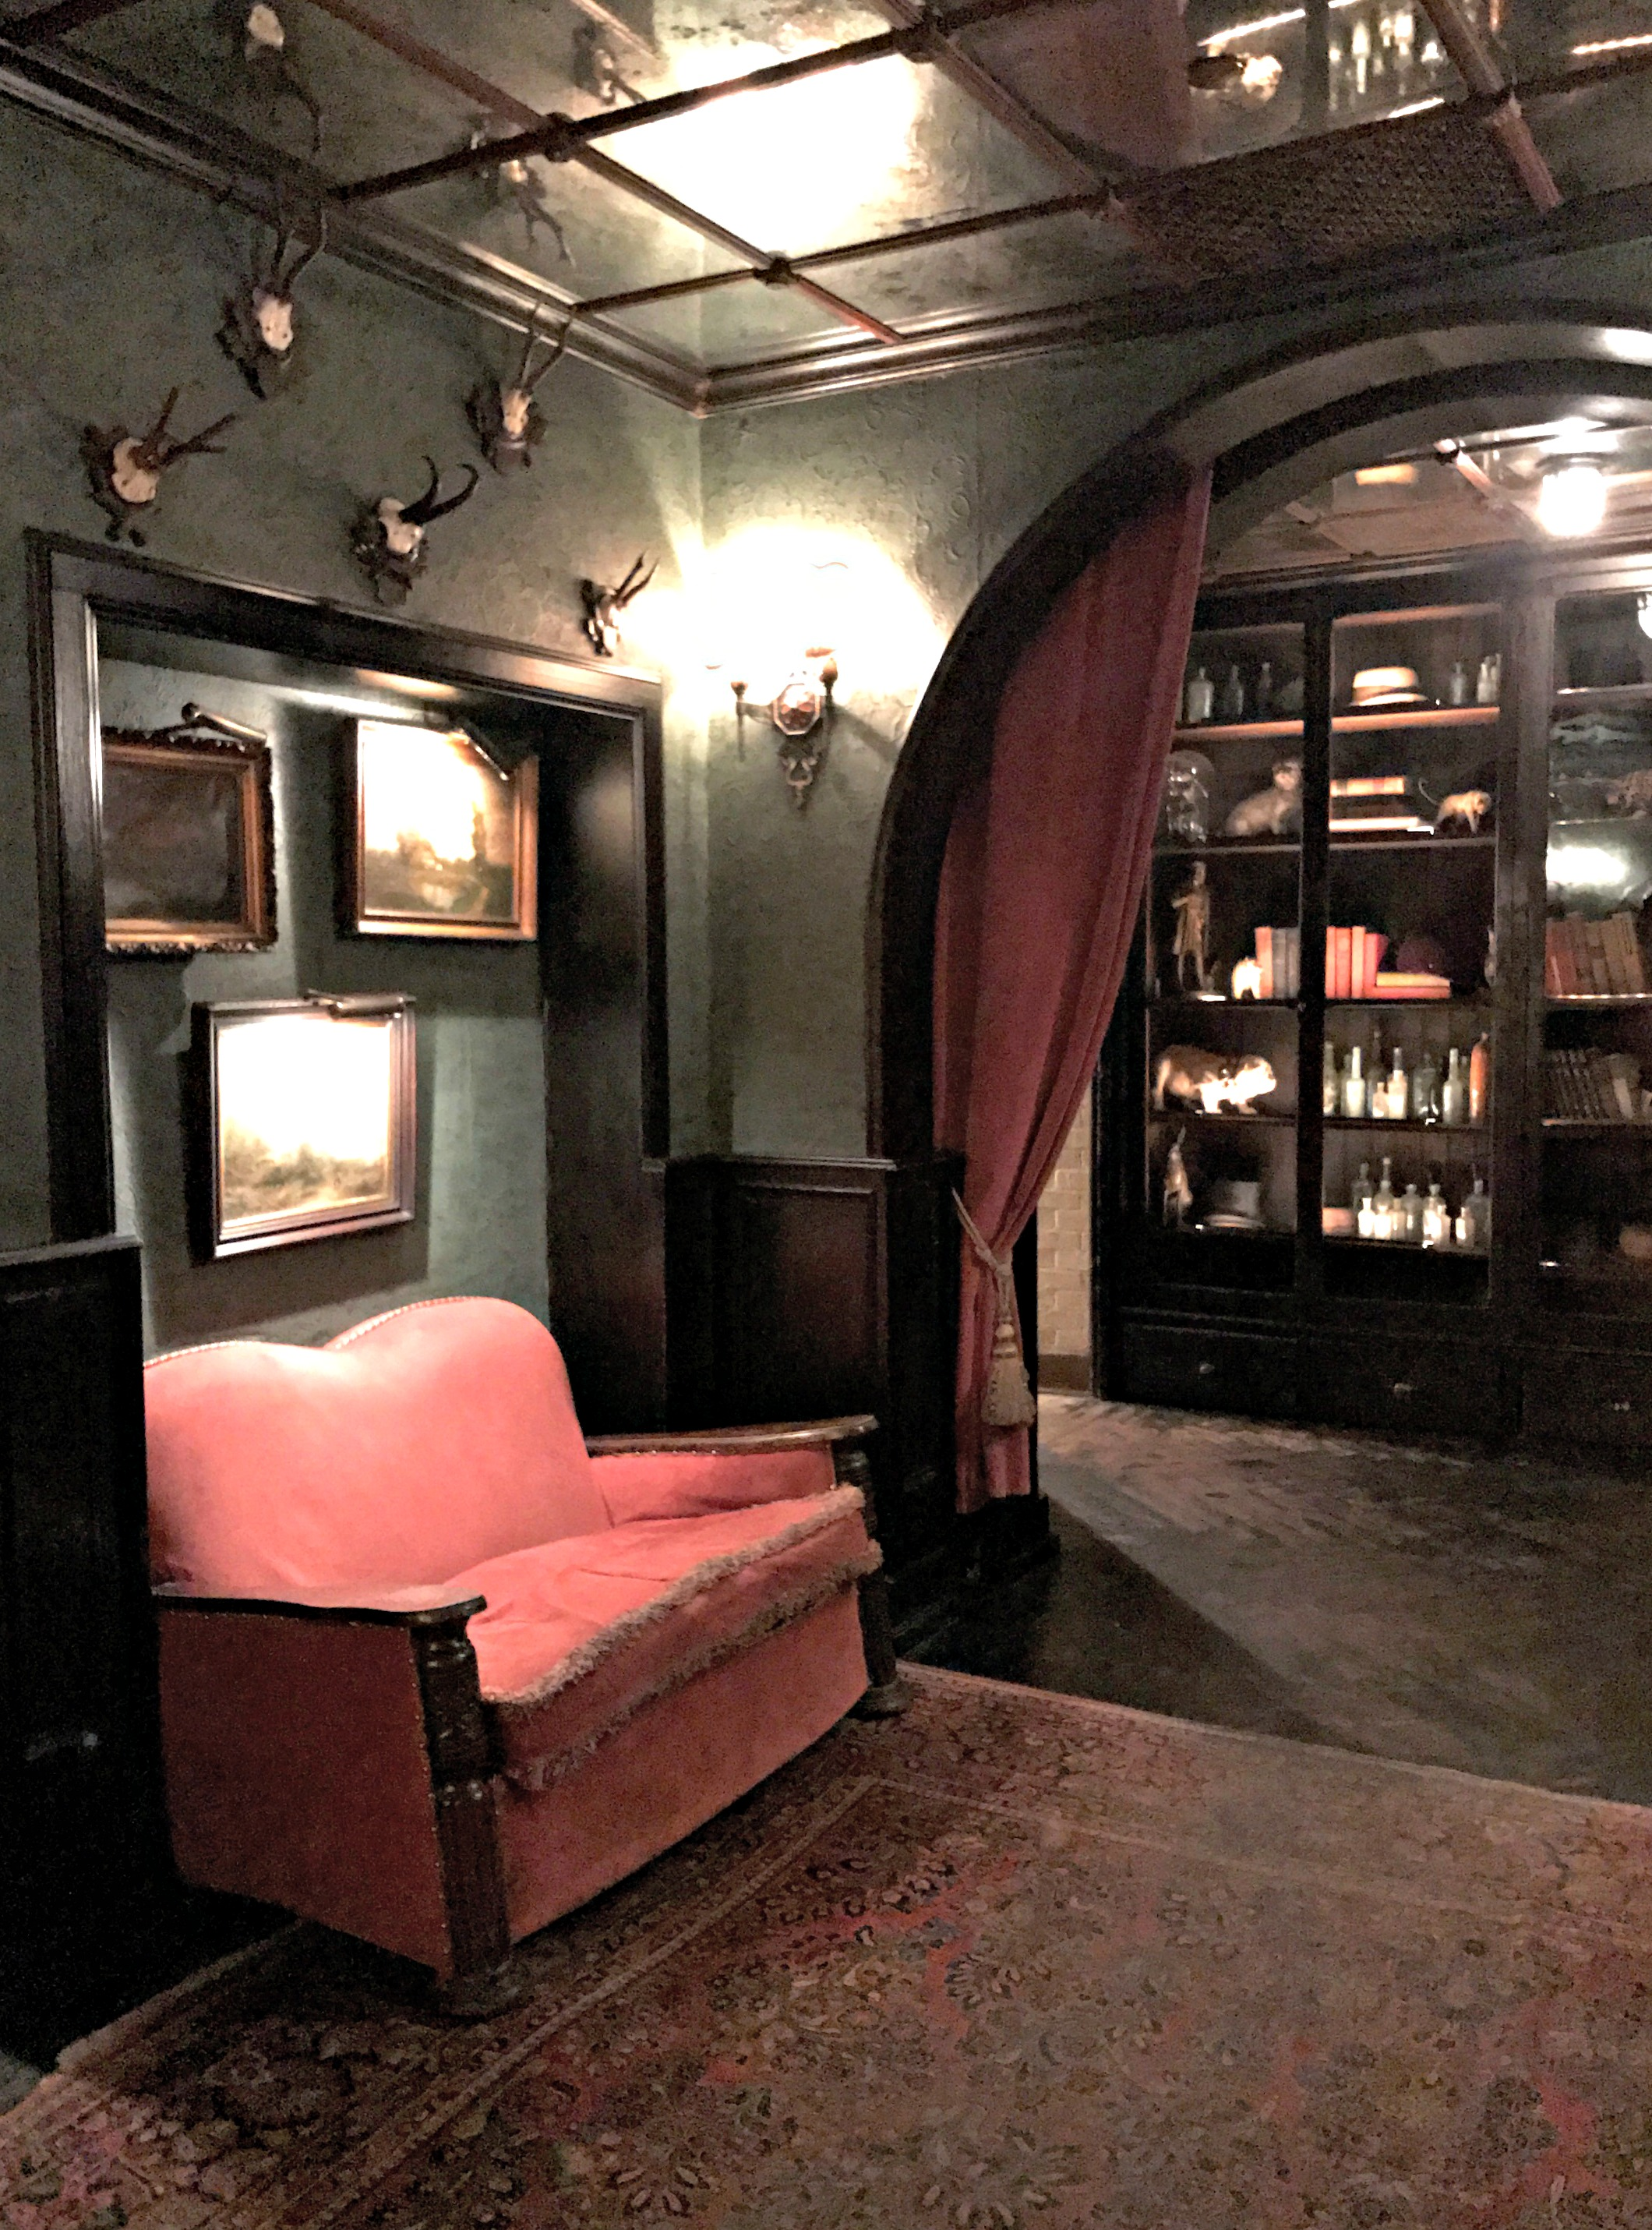 The Bowery Hotel bar